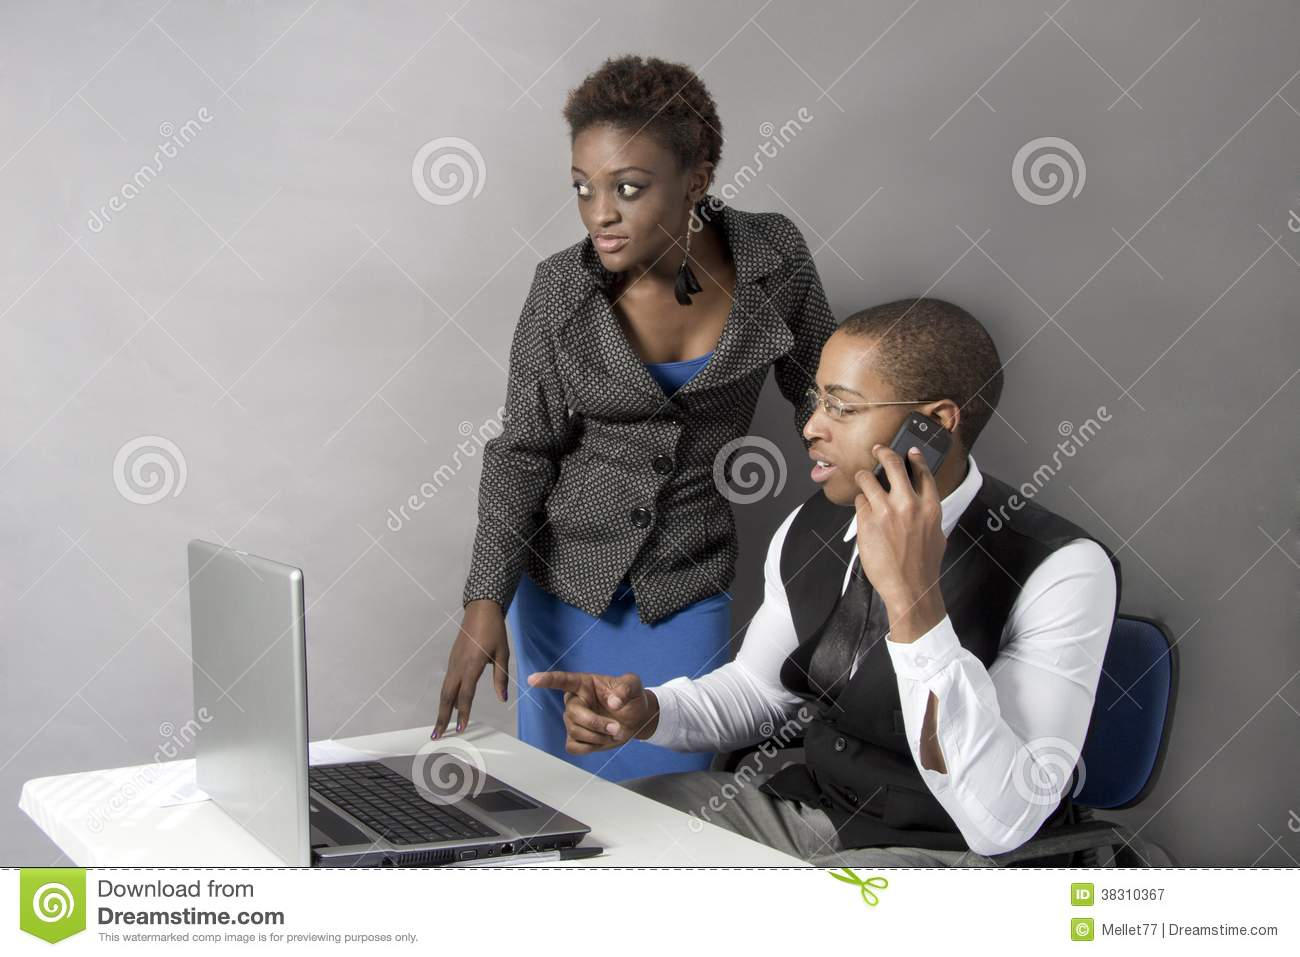 Black Business couple in office shaking hands.